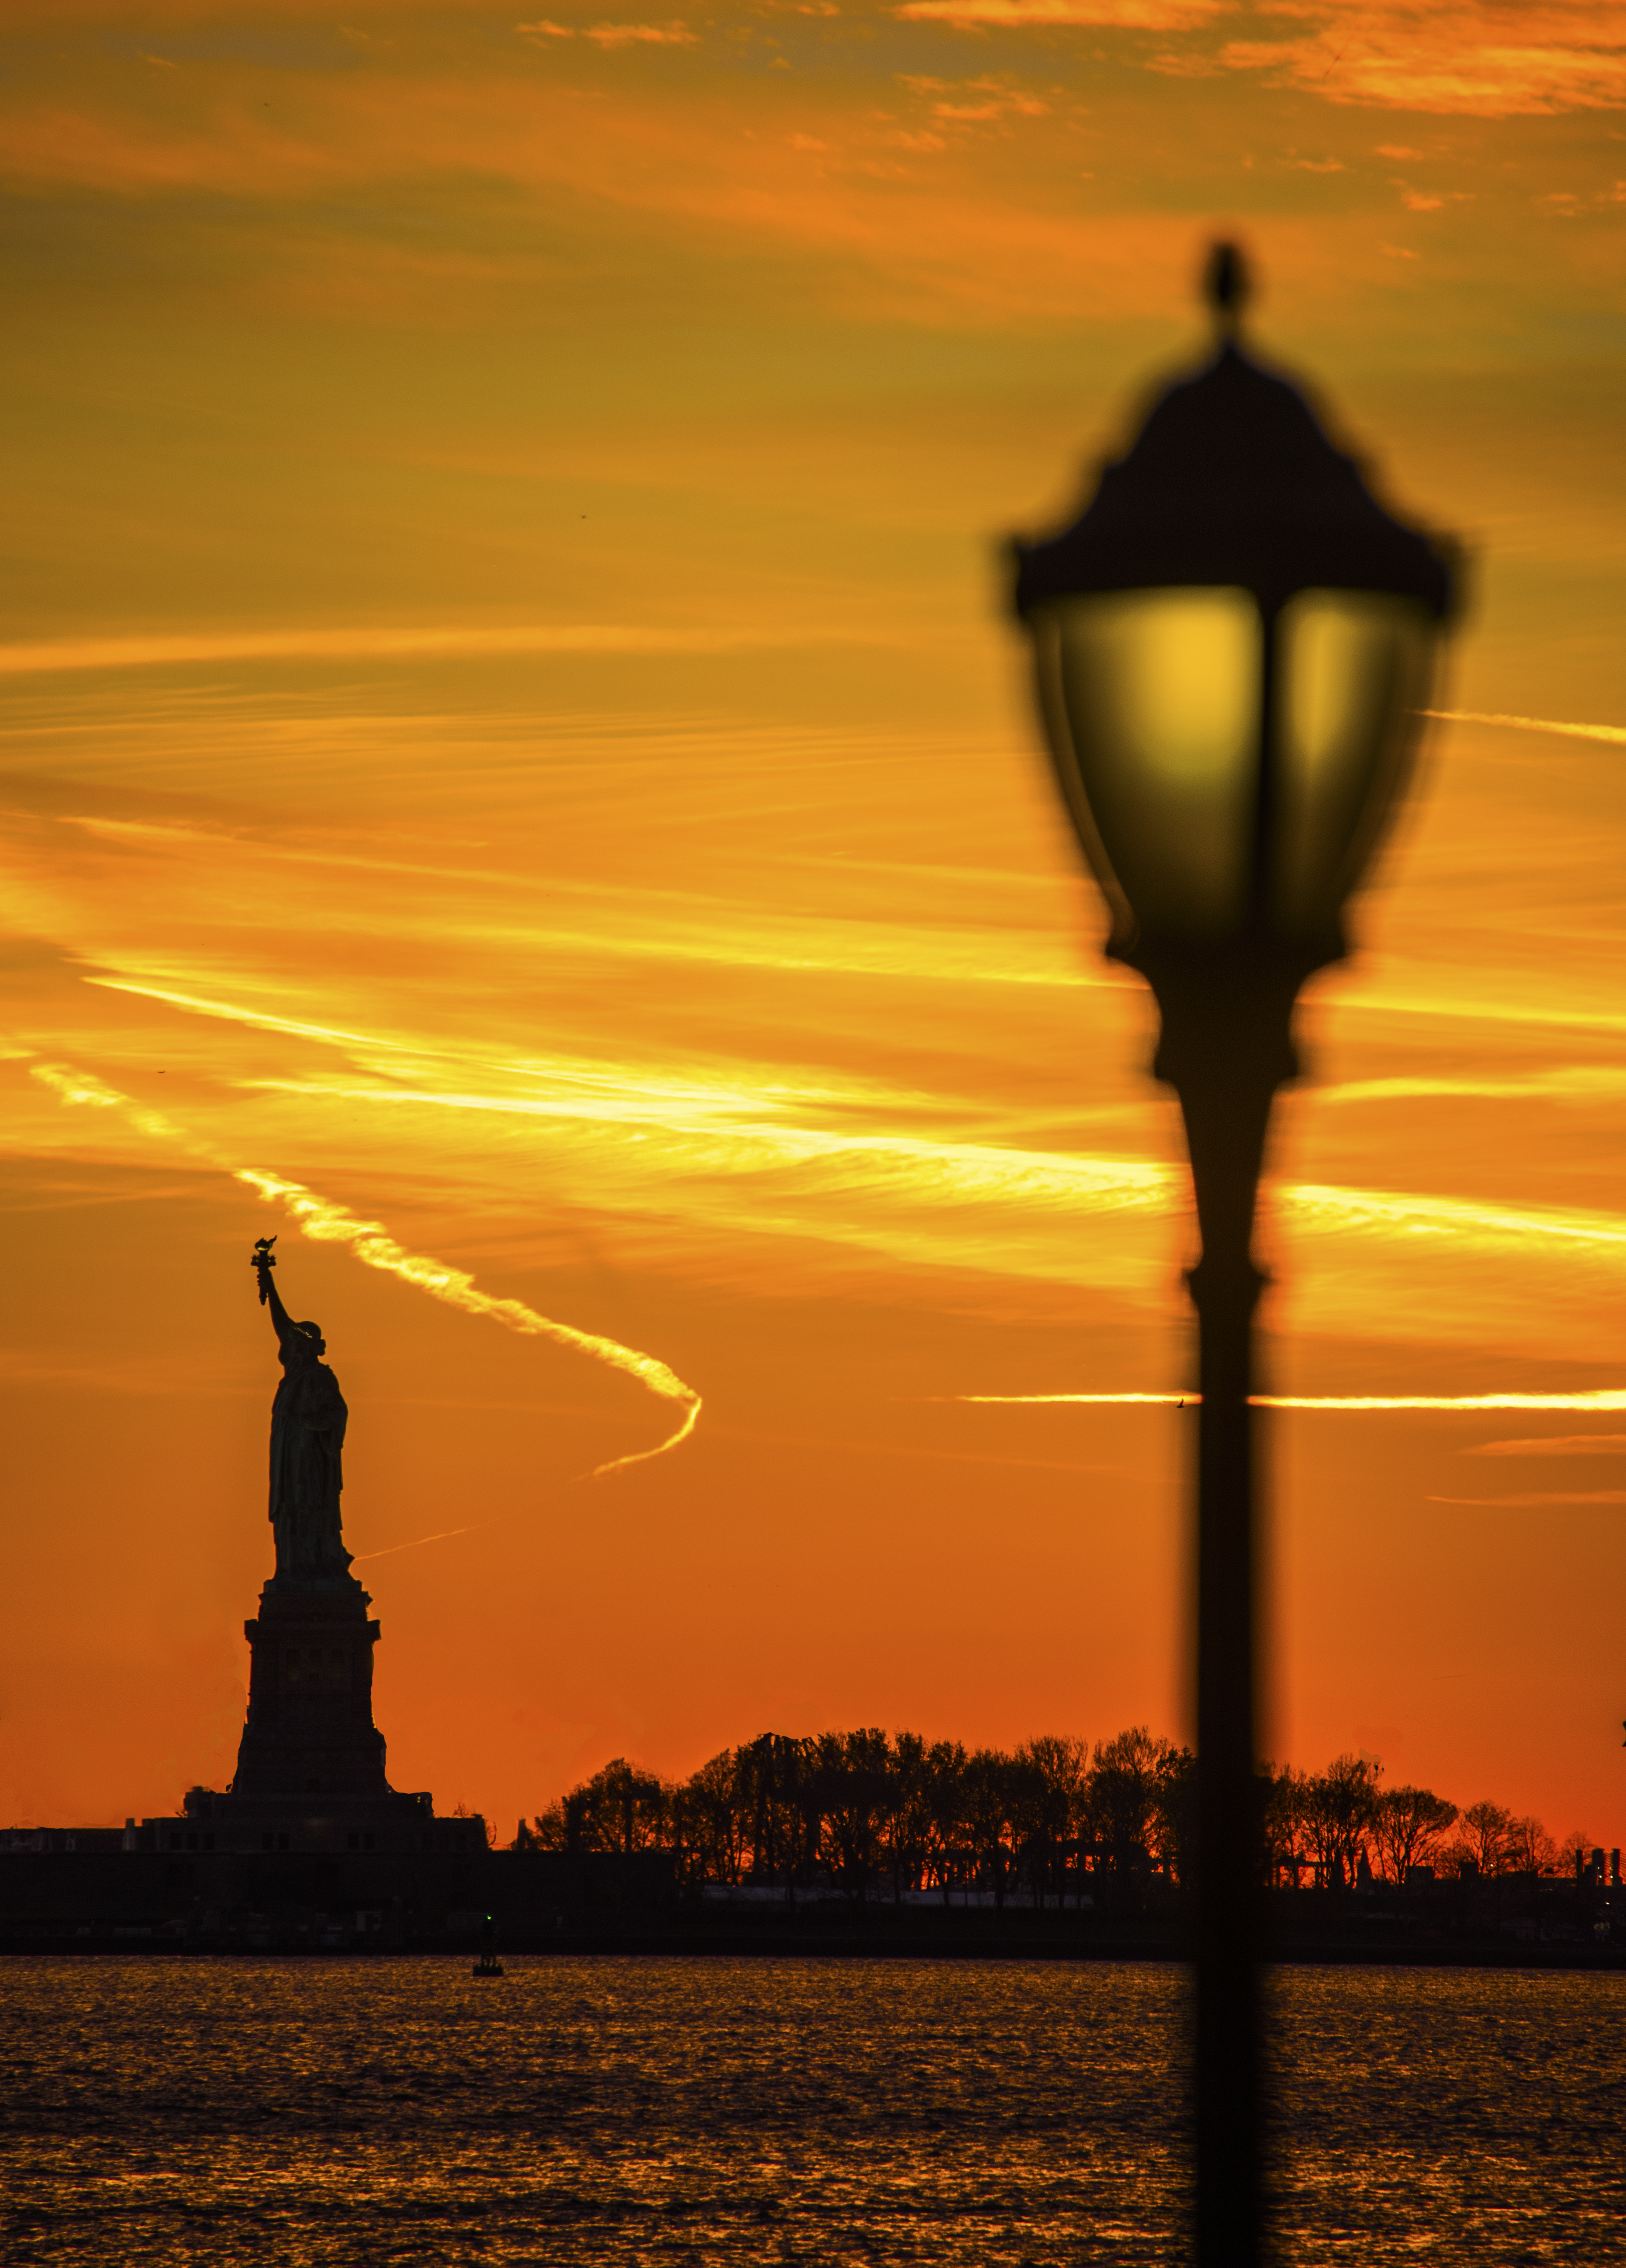 Statue of Liberty and lamp post